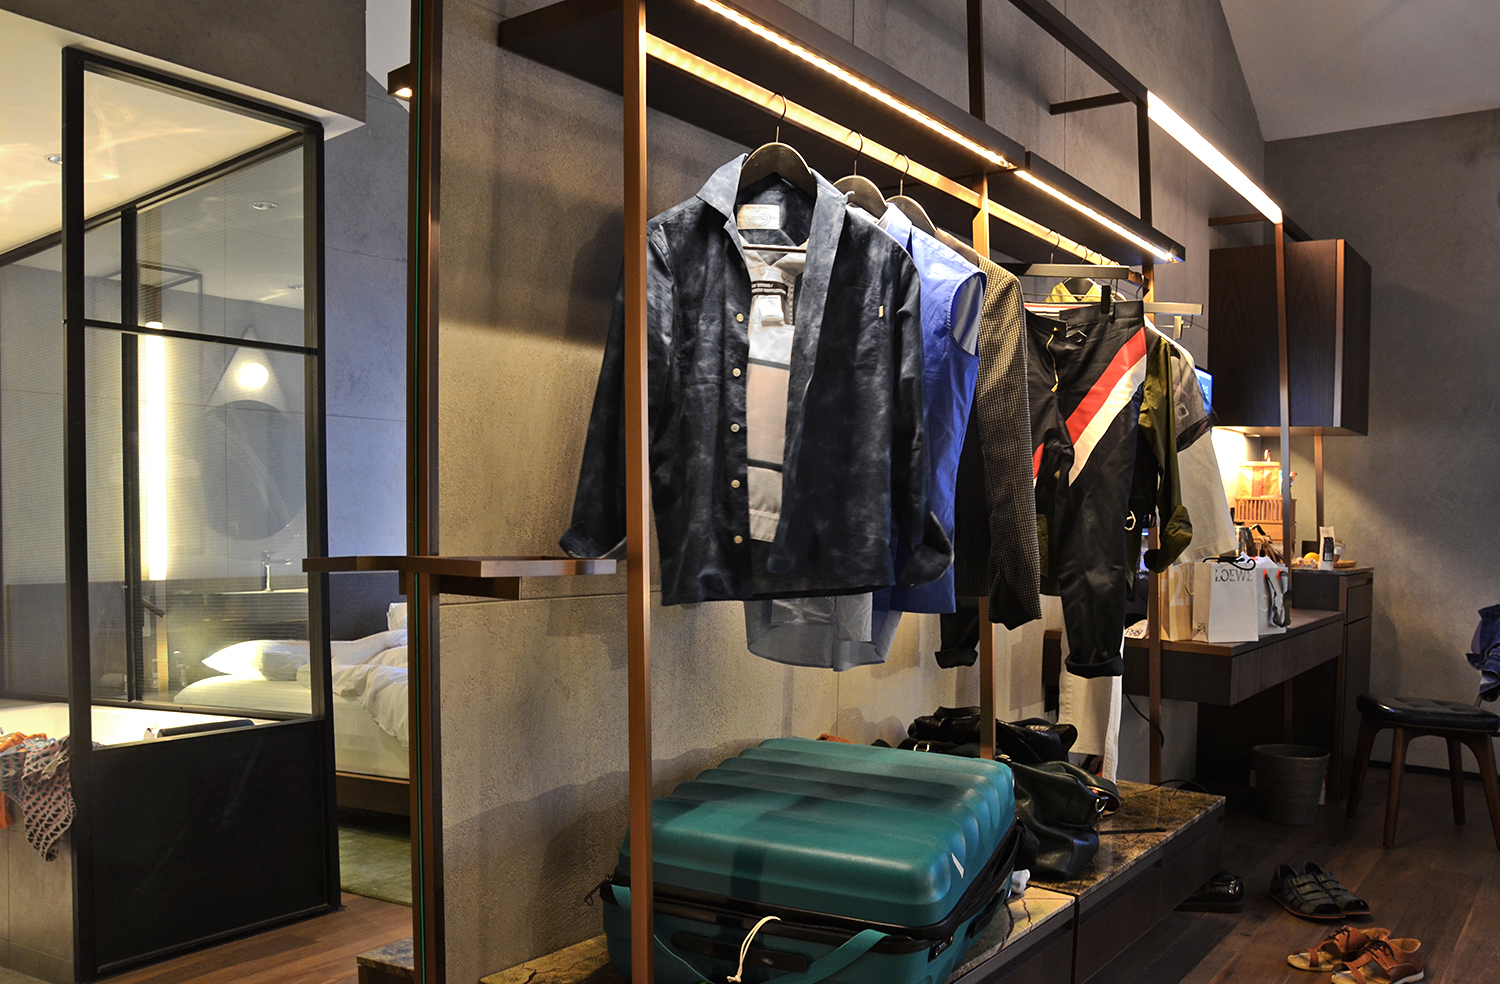 Warehouse Hotel, where to stay in singapore, industrial design, open wardrobe